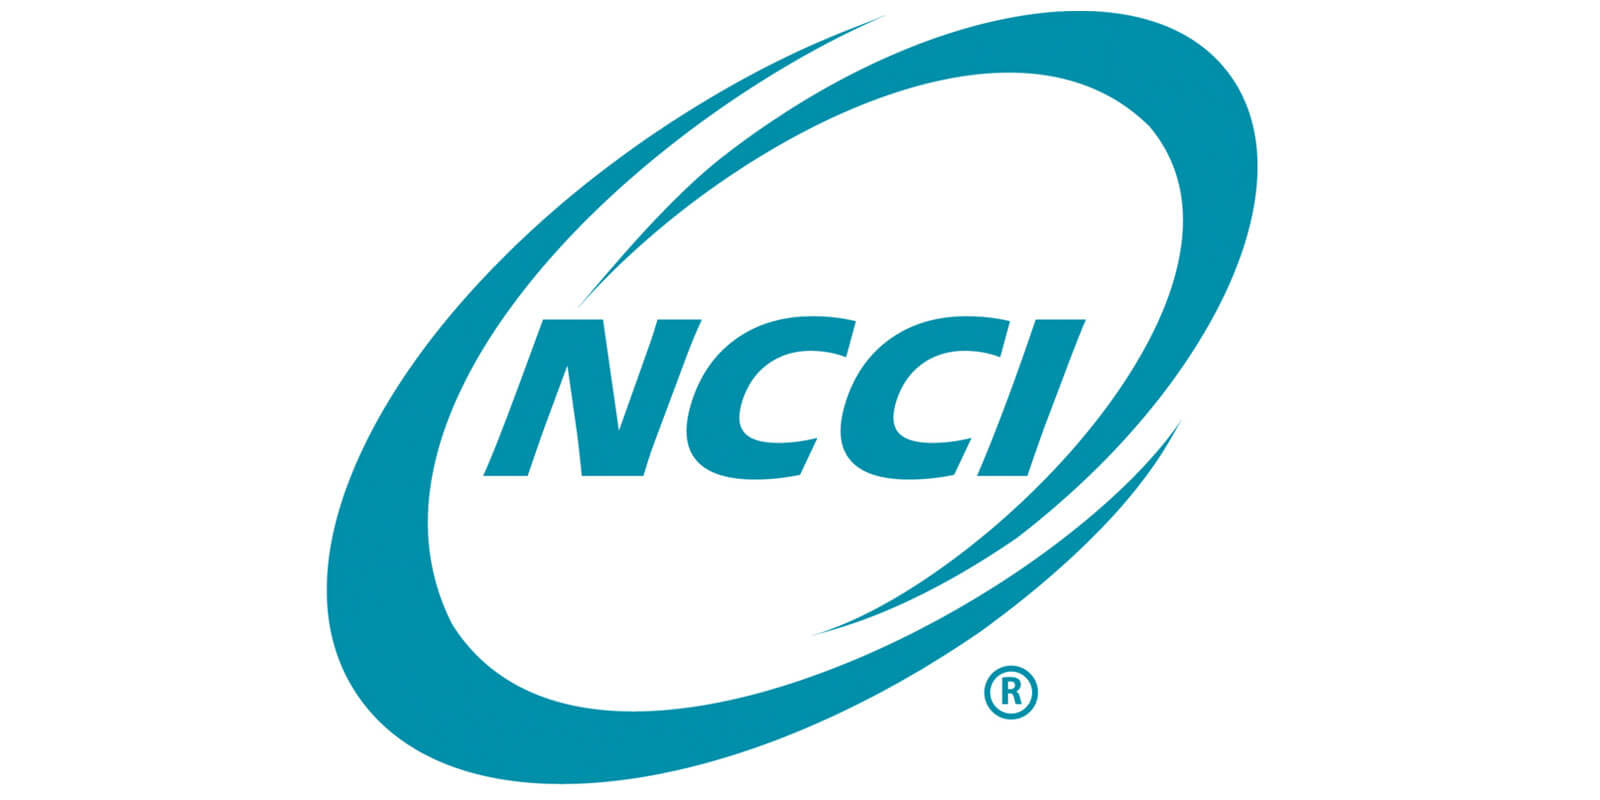 NCCI - National Council on Compensation Insurance